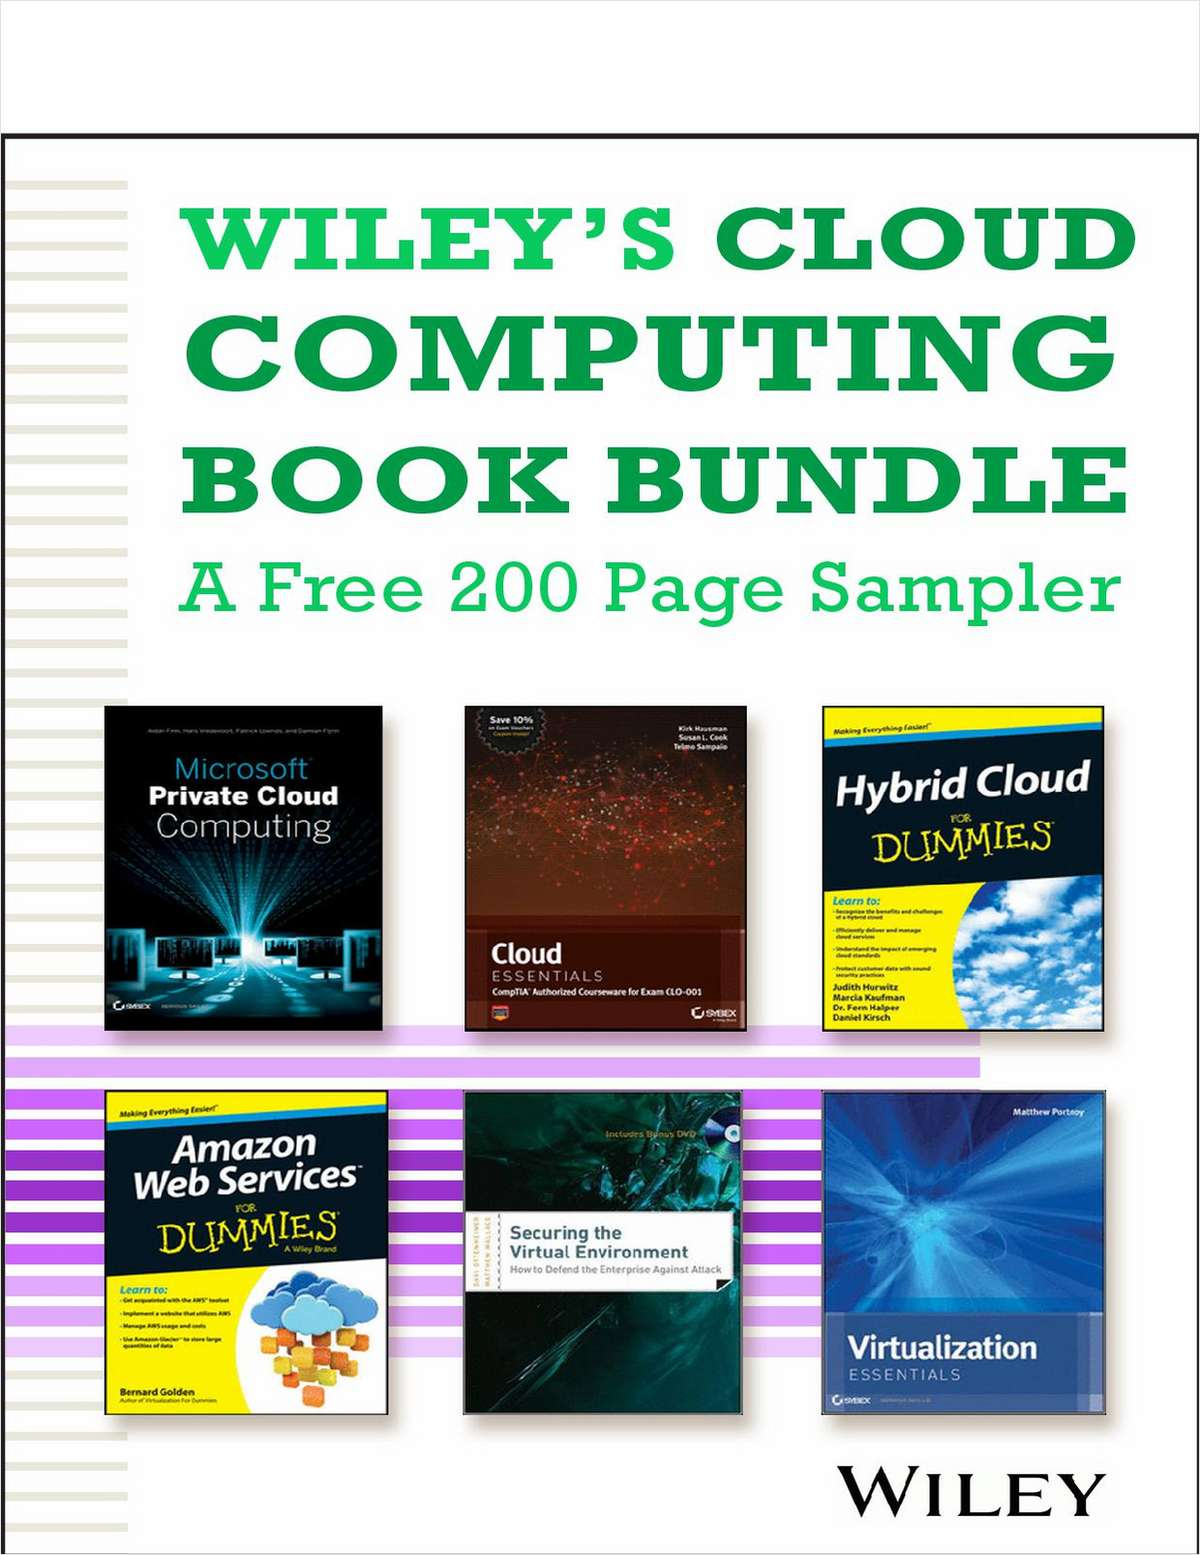 Wiley's Cloud Computing Book Bundle -- A Free 200 Page Sampler